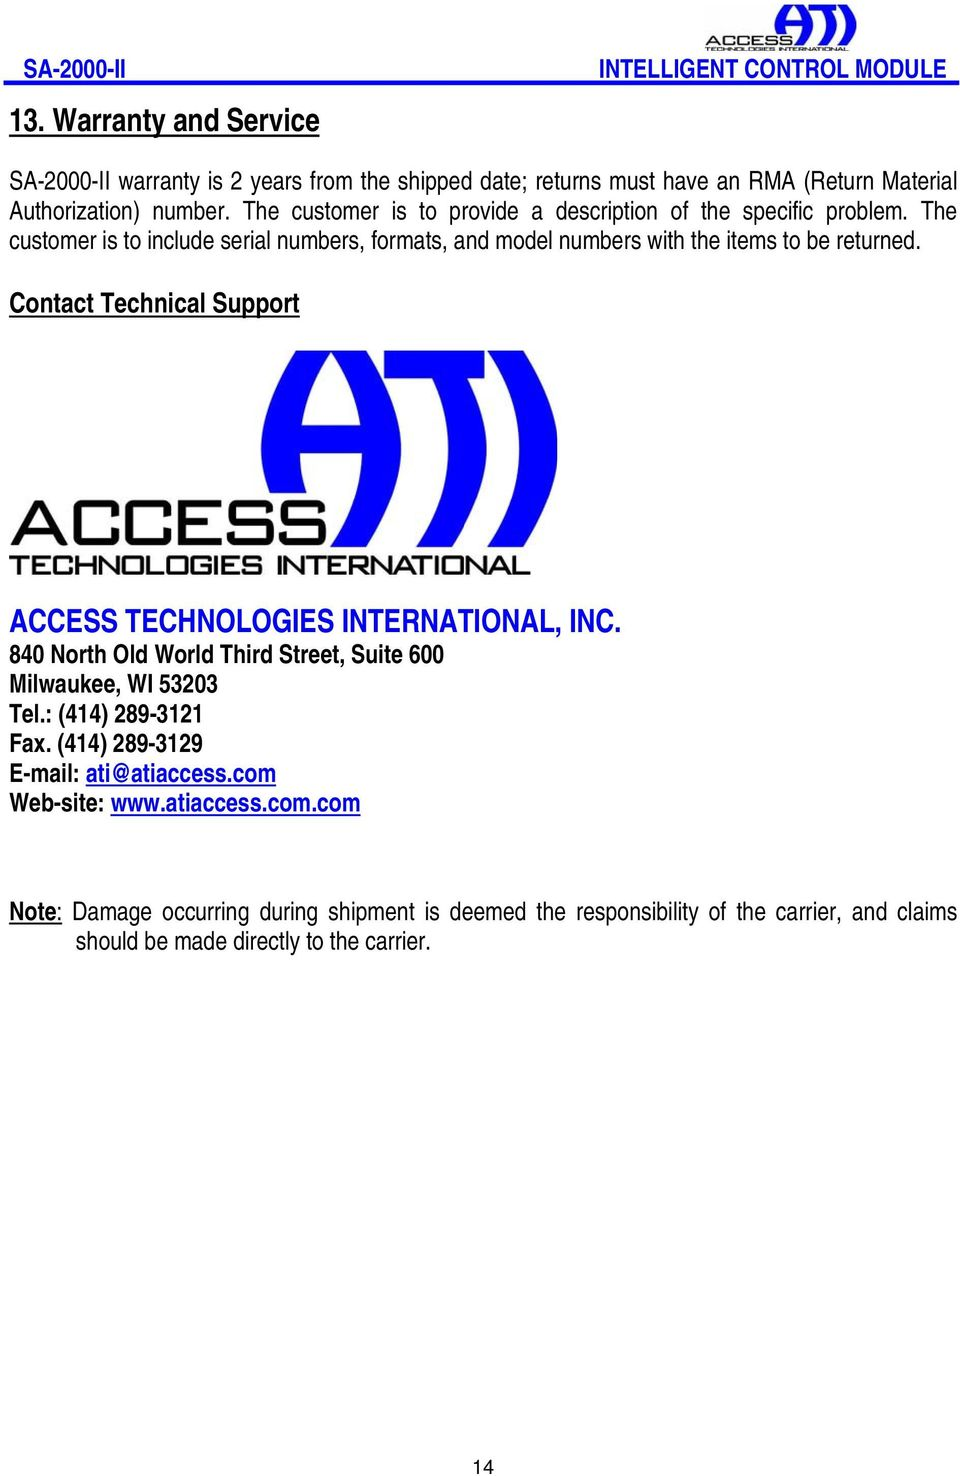 Contact Technical Support ACCESS TECHNOLOGIES INTERNATIONAL, INC. 840 North Old World Third Street, Suite 600 Milwaukee, WI 53203 Tel.: (414) 289-3121 Fax.